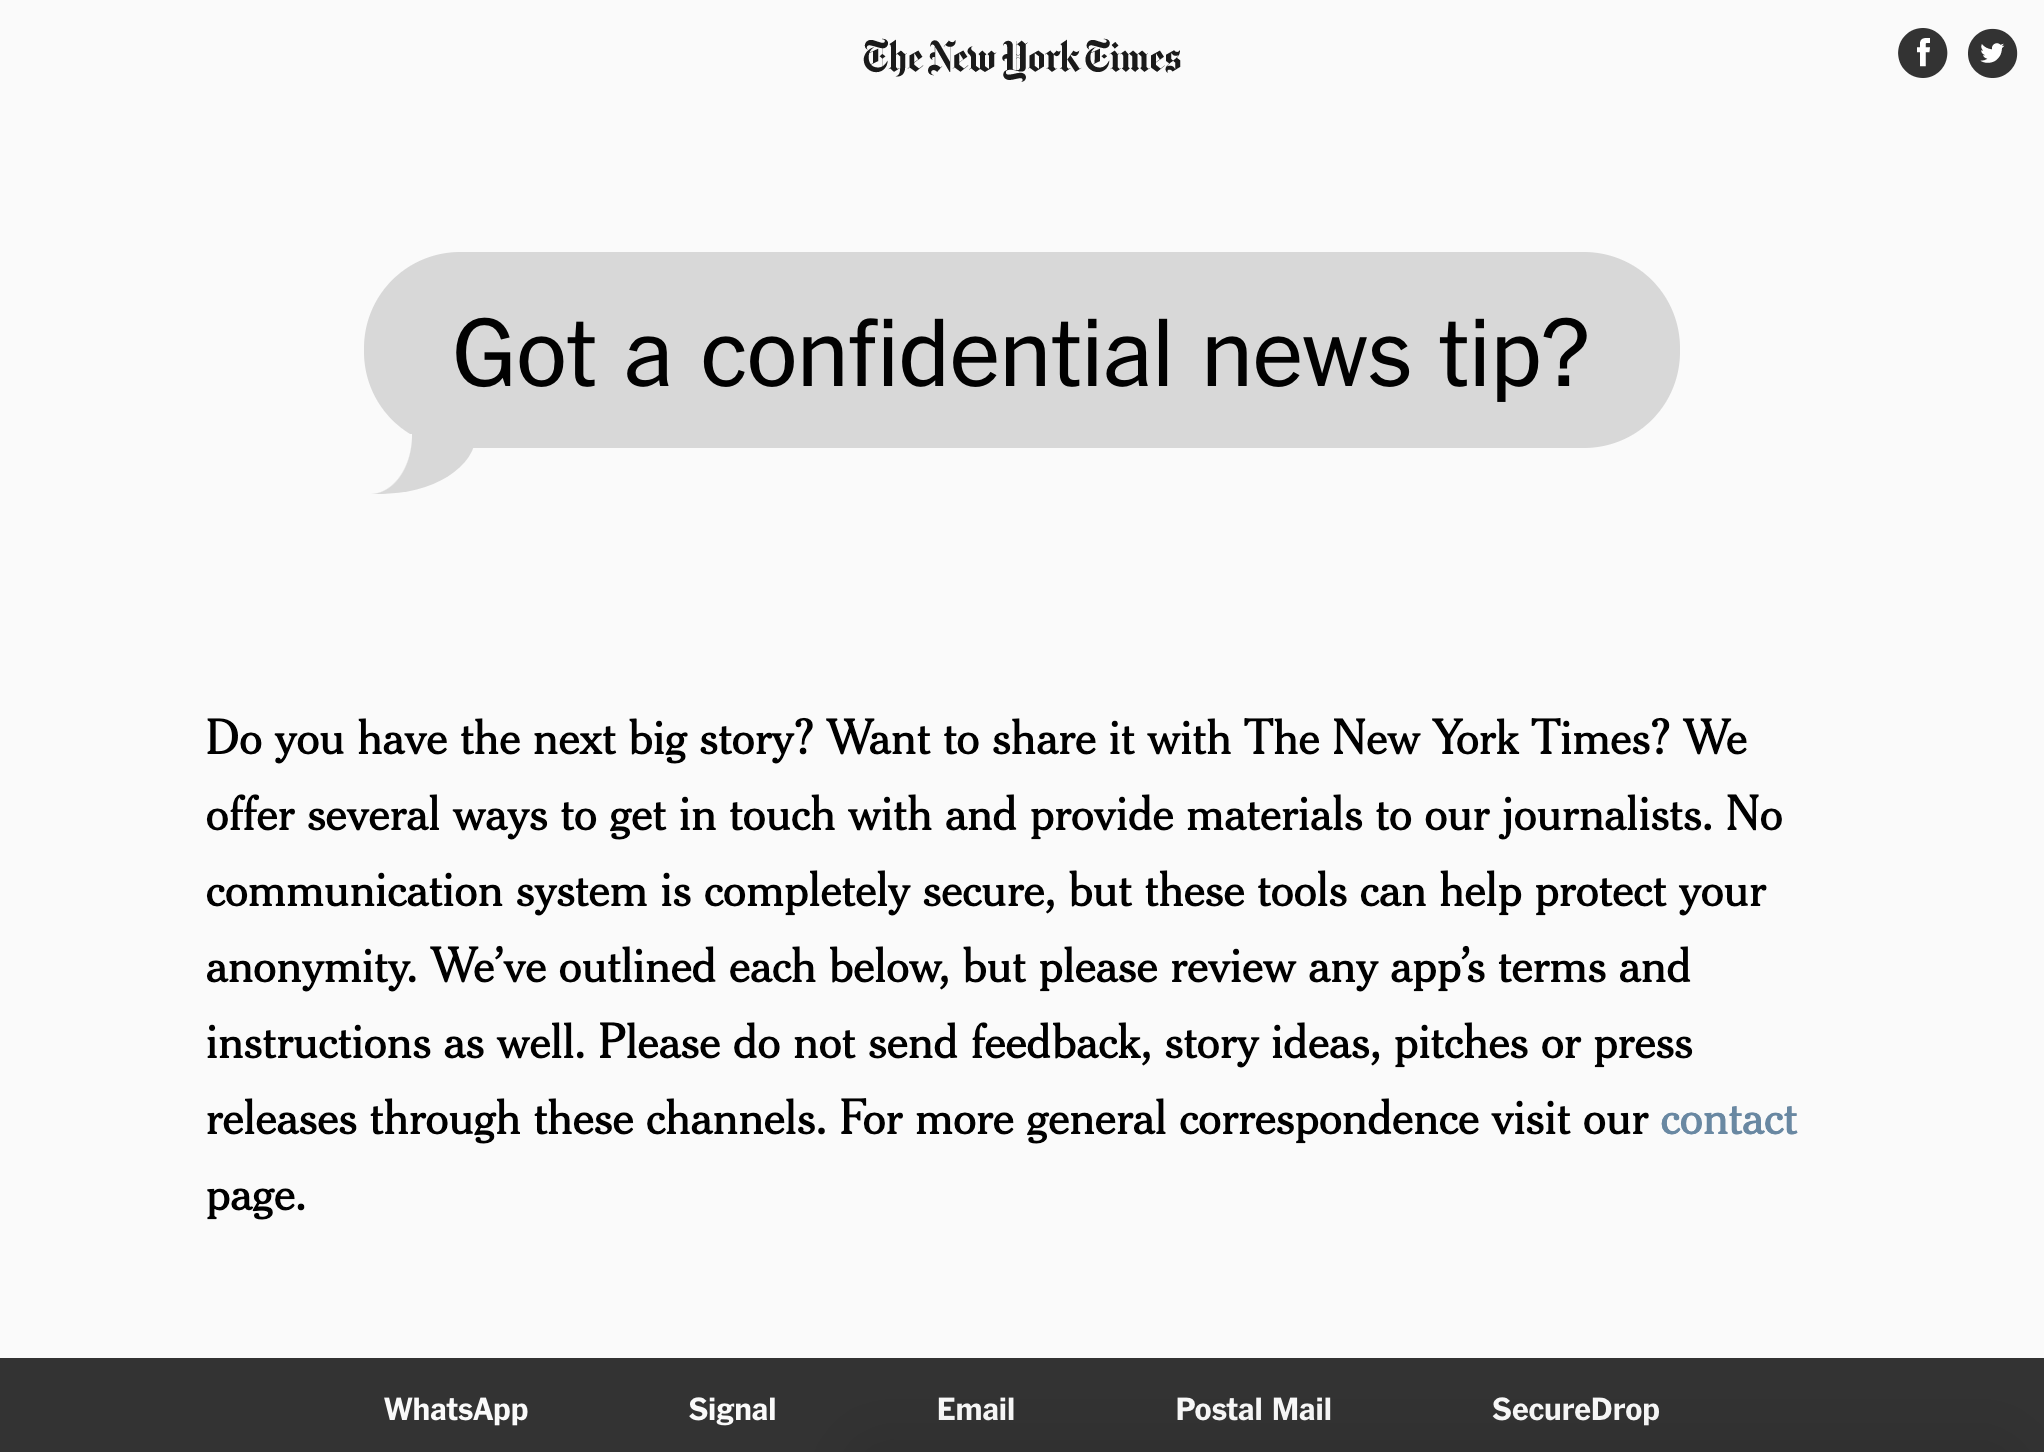 Screenshot from The New York Times' confidential tip page.